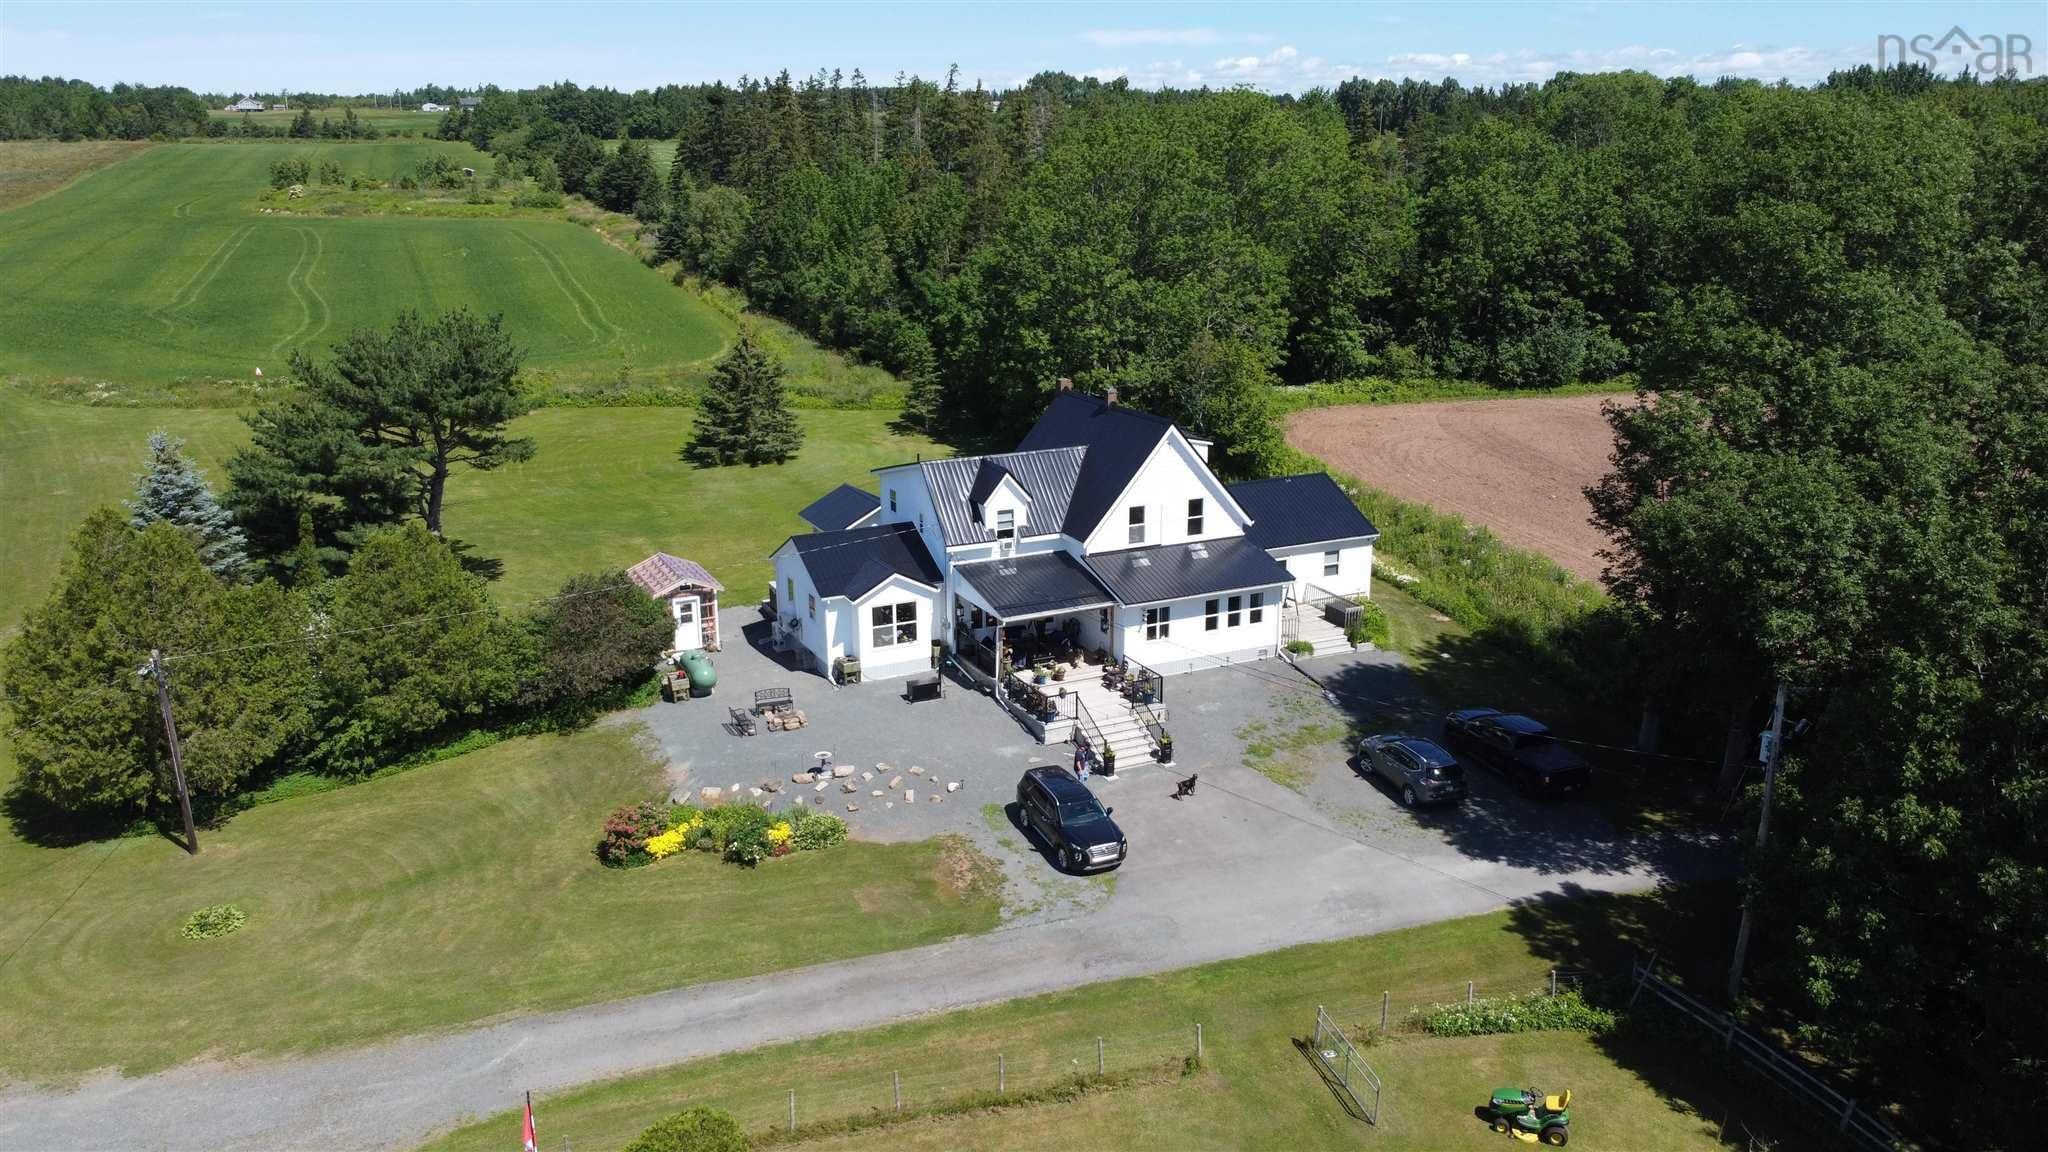 Main Photo: 223 Scotch Hill Road in Lyons Brook: 108-Rural Pictou County Residential for sale (Northern Region)  : MLS®# 202120326